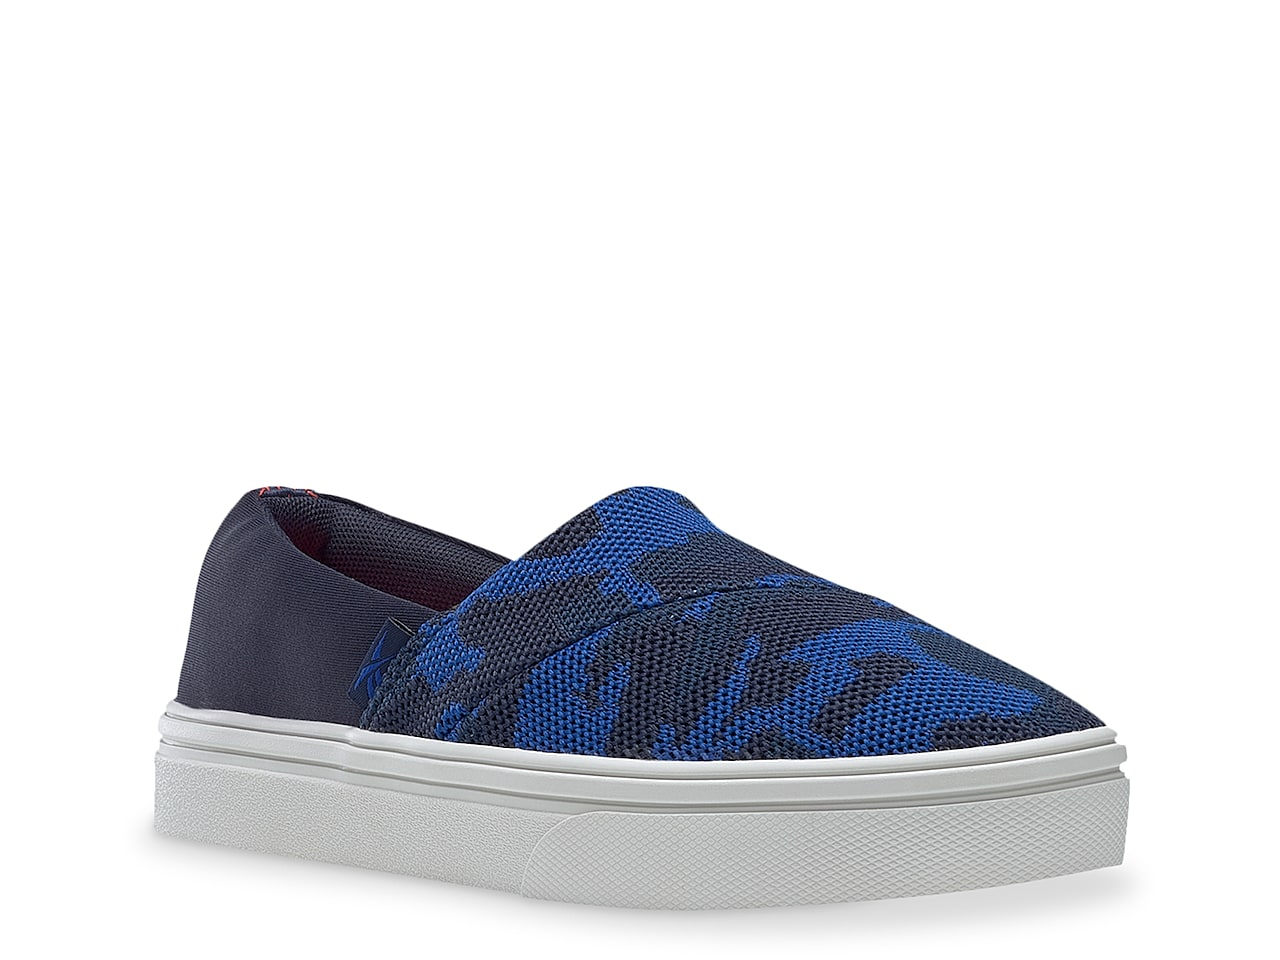 Katura Slip-On Sneaker - Women's